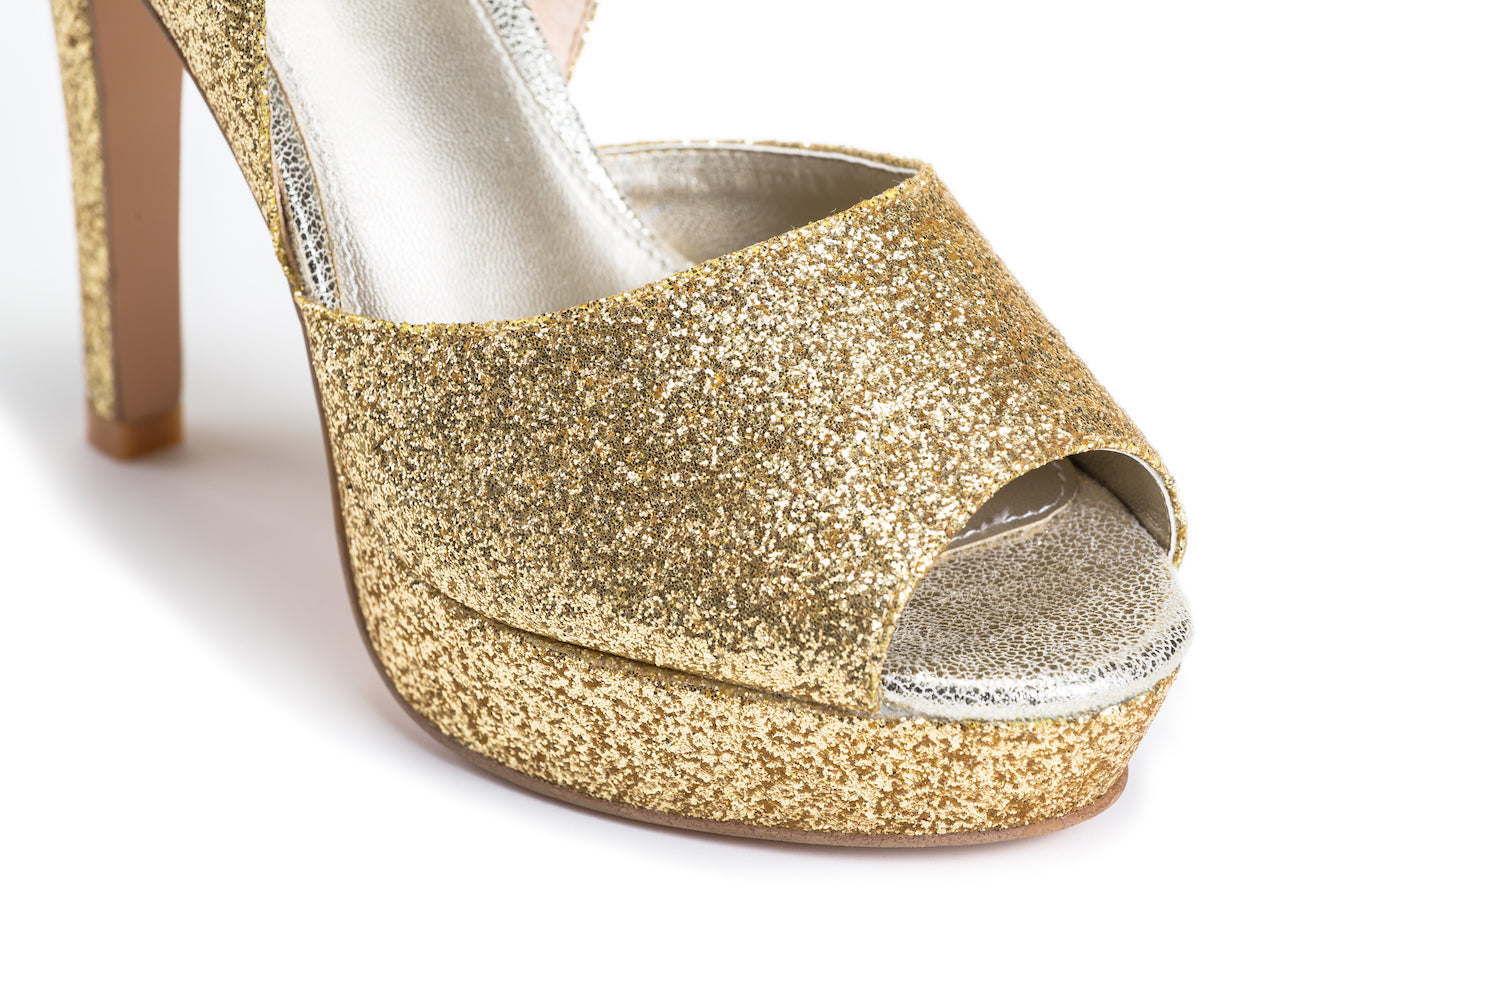 Michele Ho Gold Glitter Pumps perfect wedding heels party heels bridesmaids heels.